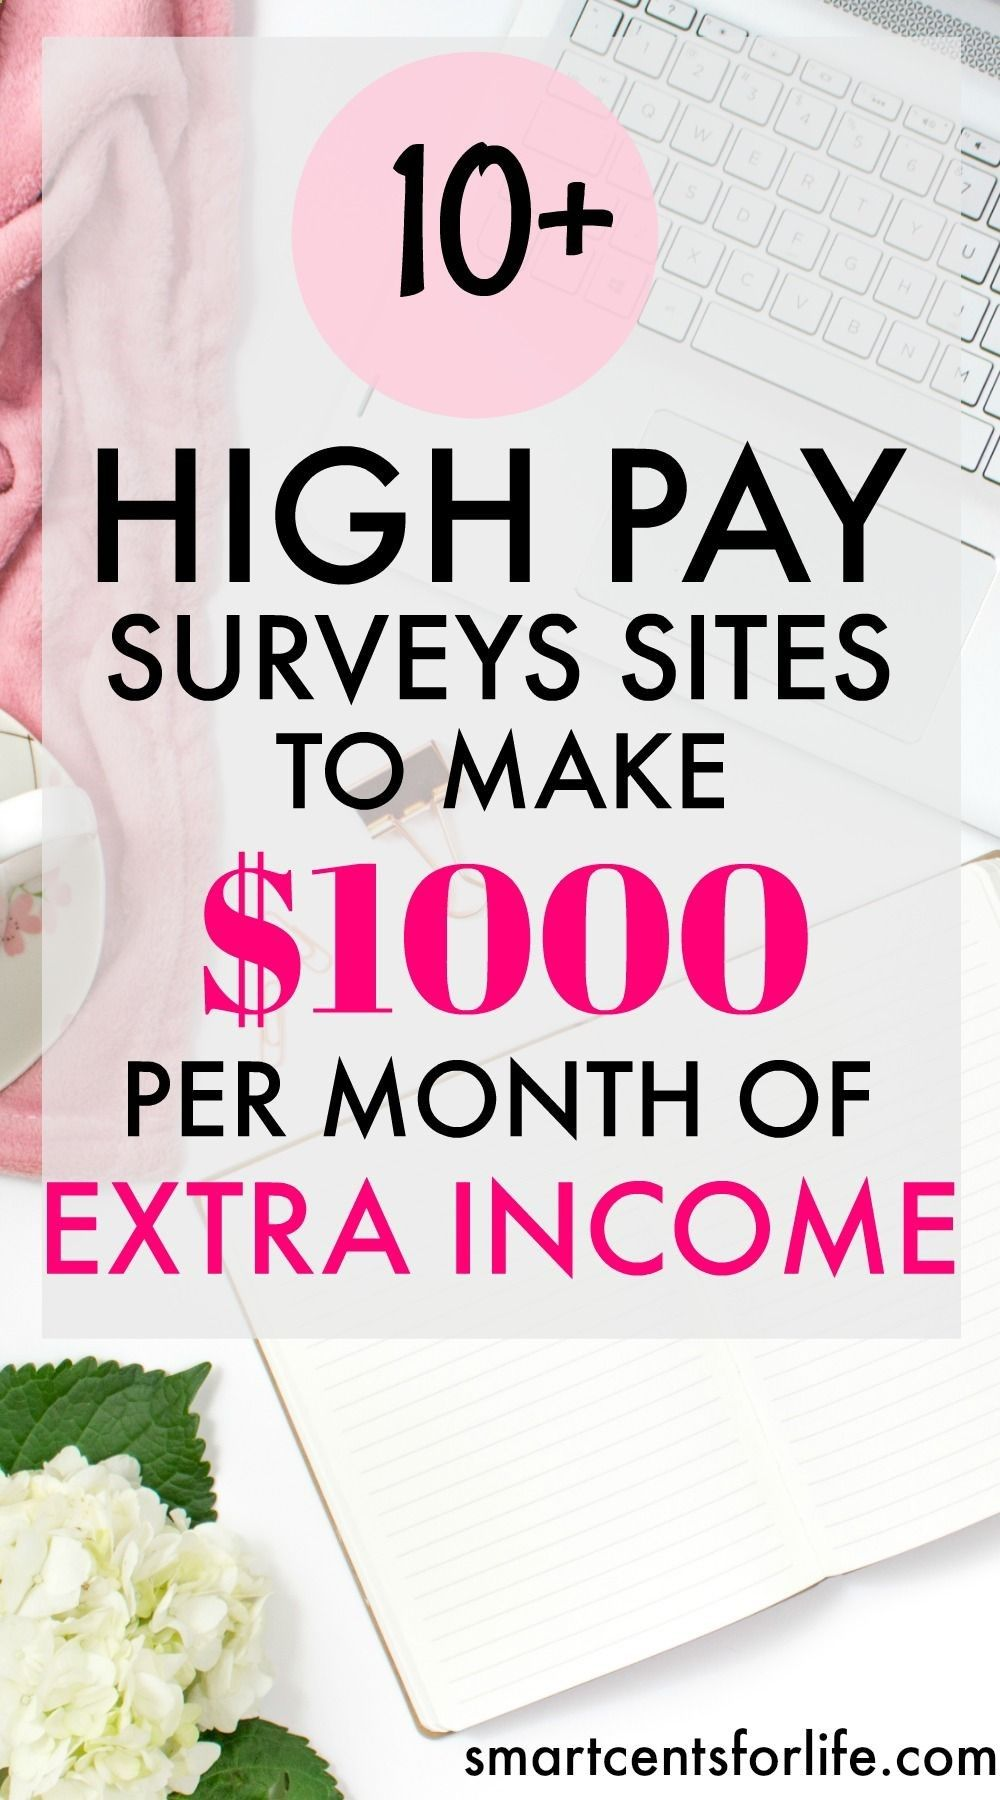 Making Money at Home Writing Online - Over 10 high pay survey sites ...